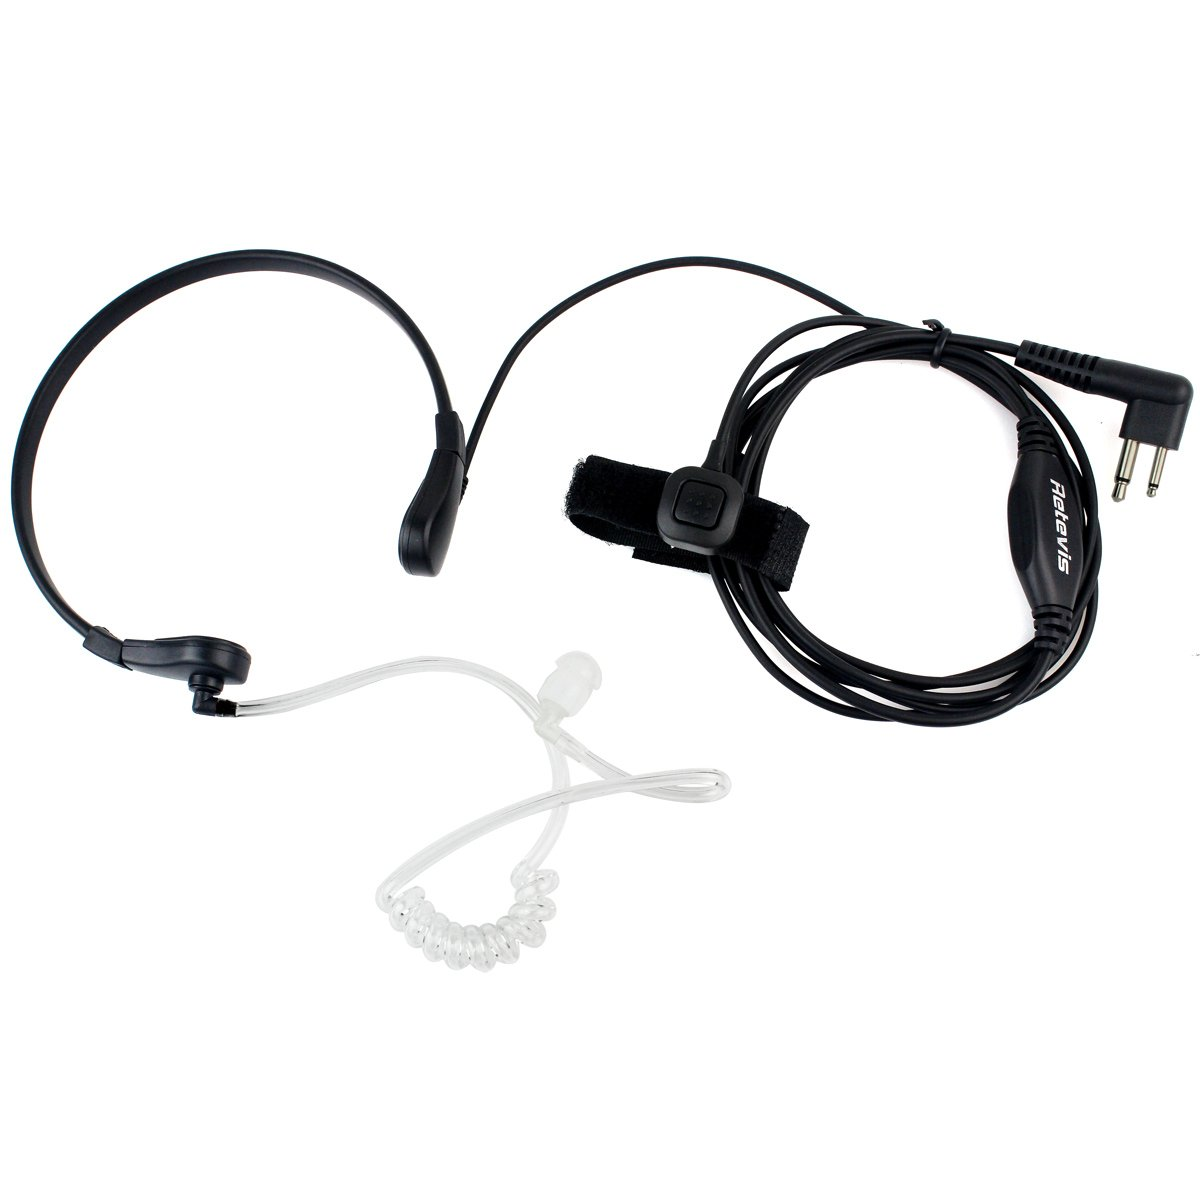 Retevis Earpiece Acoustic Compatible Motorola